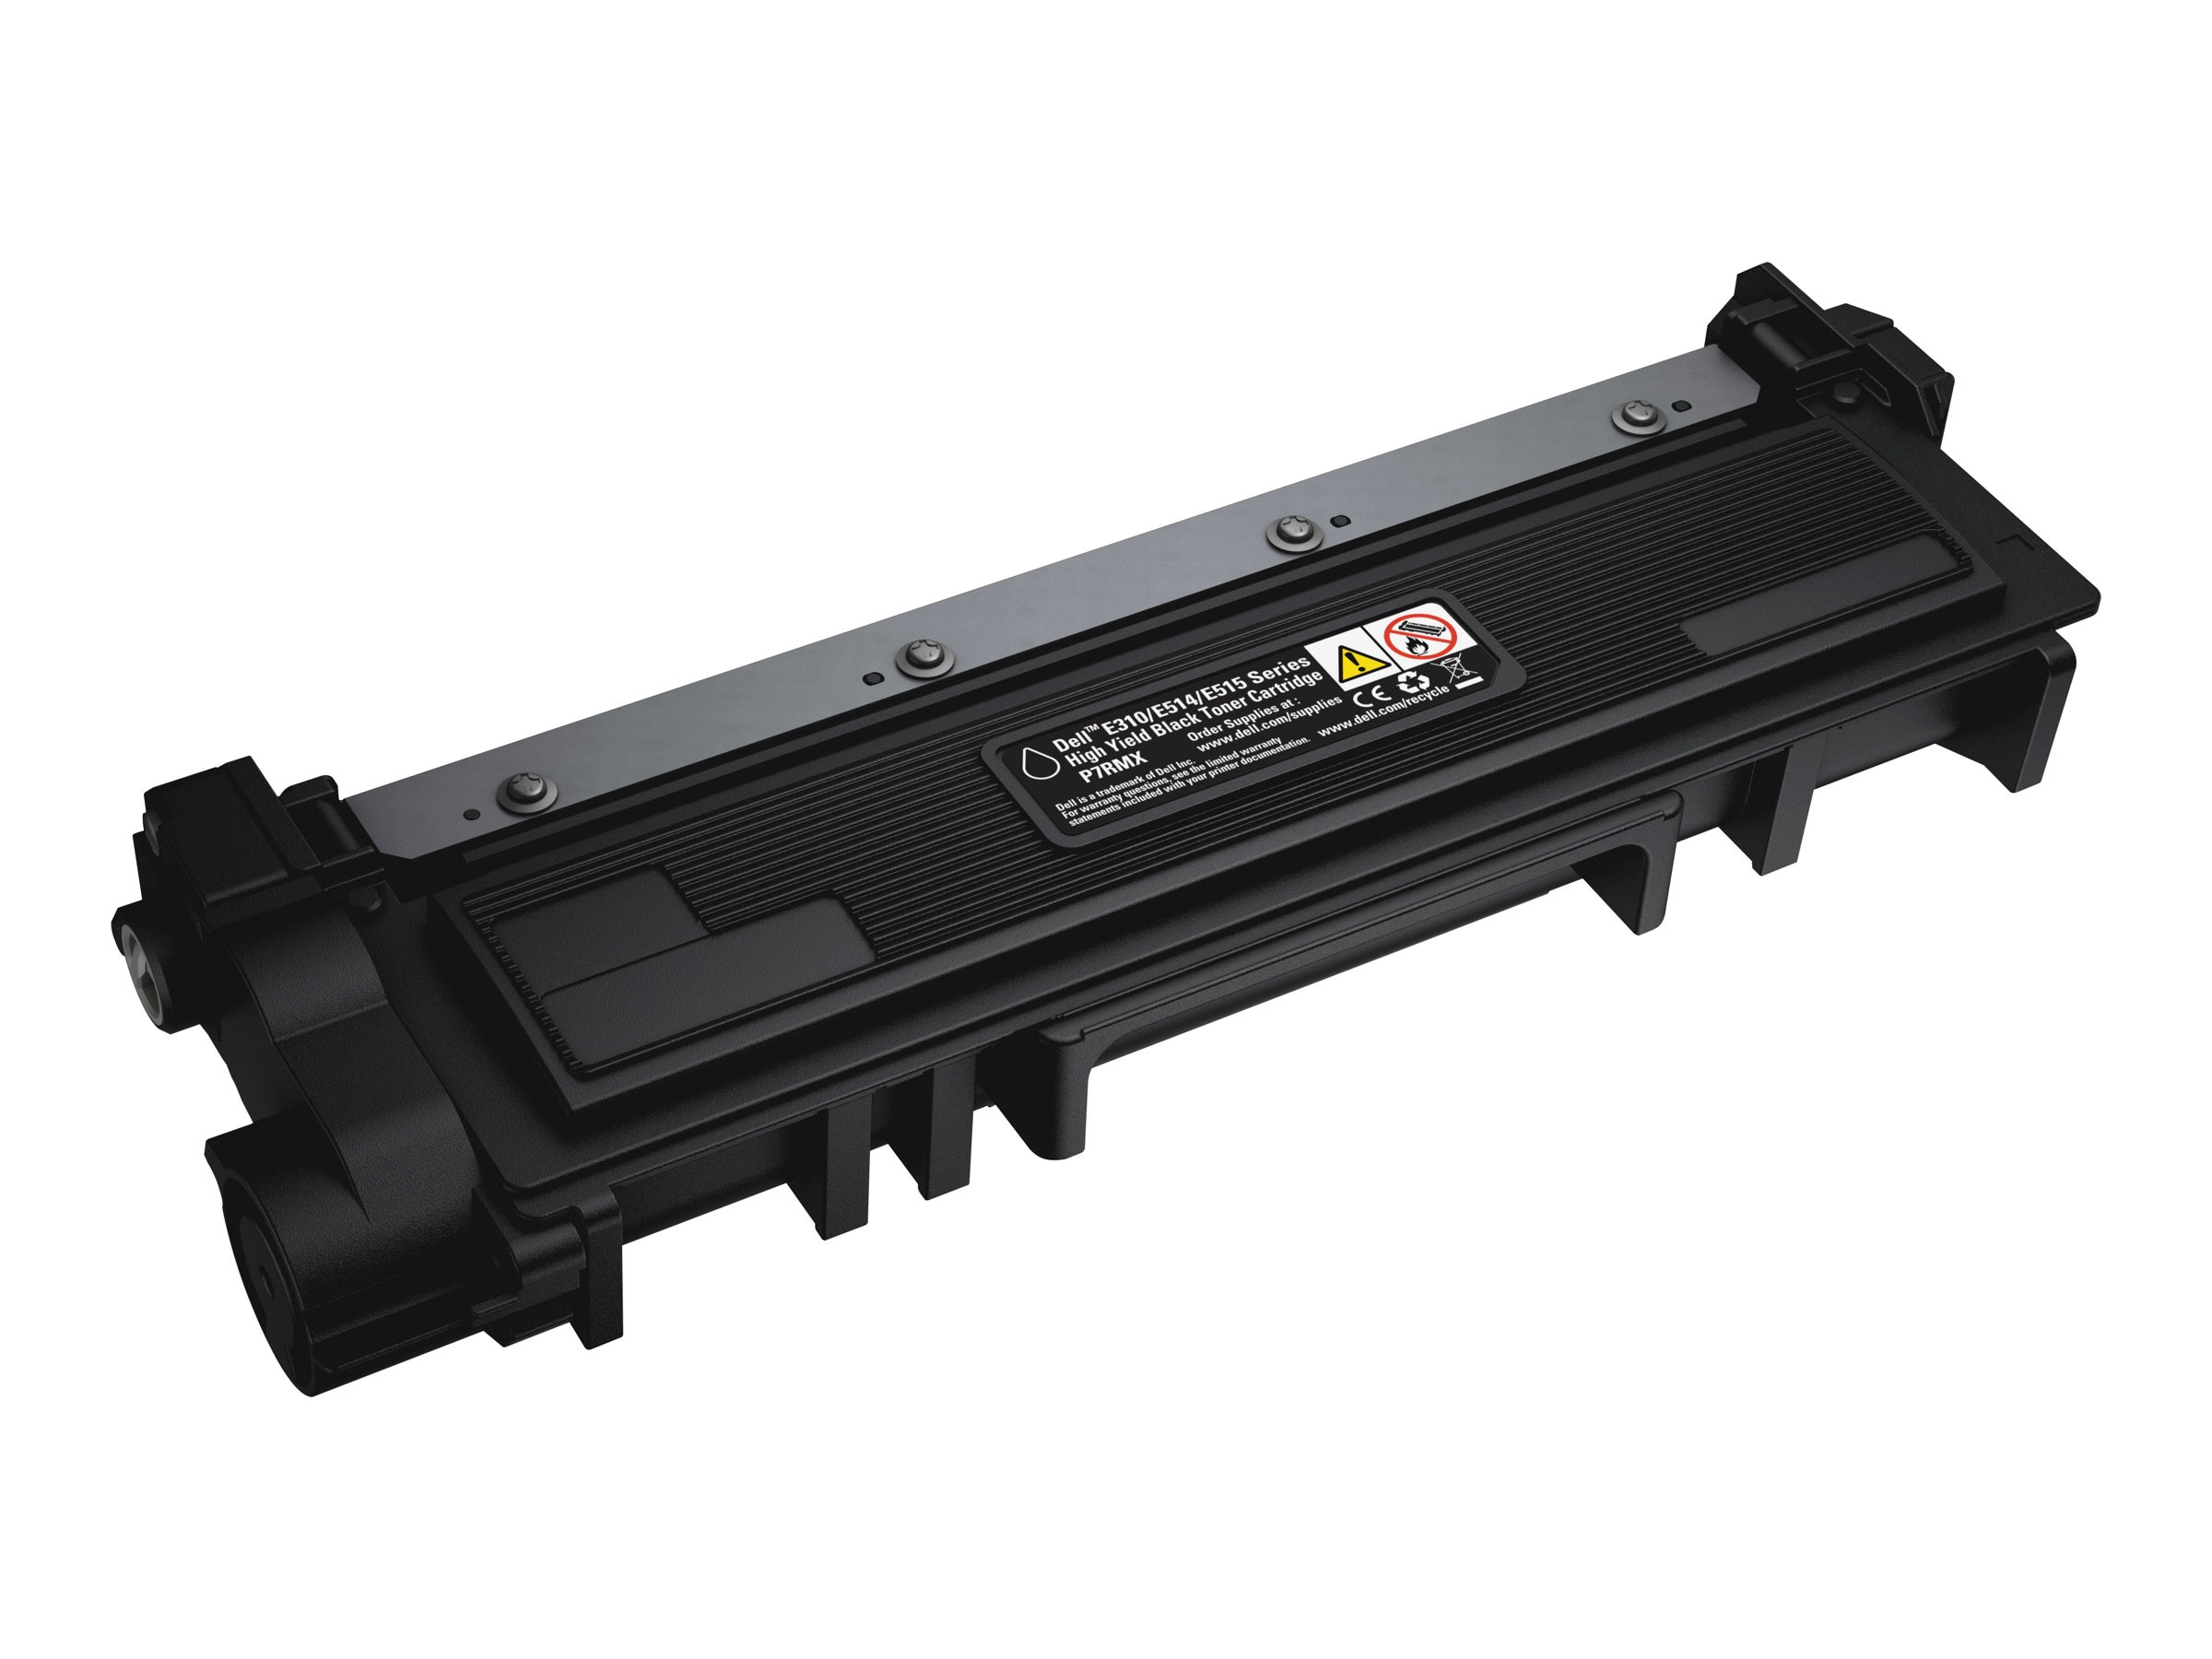 Dell 2600 Page Black High Yield Toner Cartridge for Dell E310dw, E514dw, 515dn & E515dn Printer(593-BBKD)